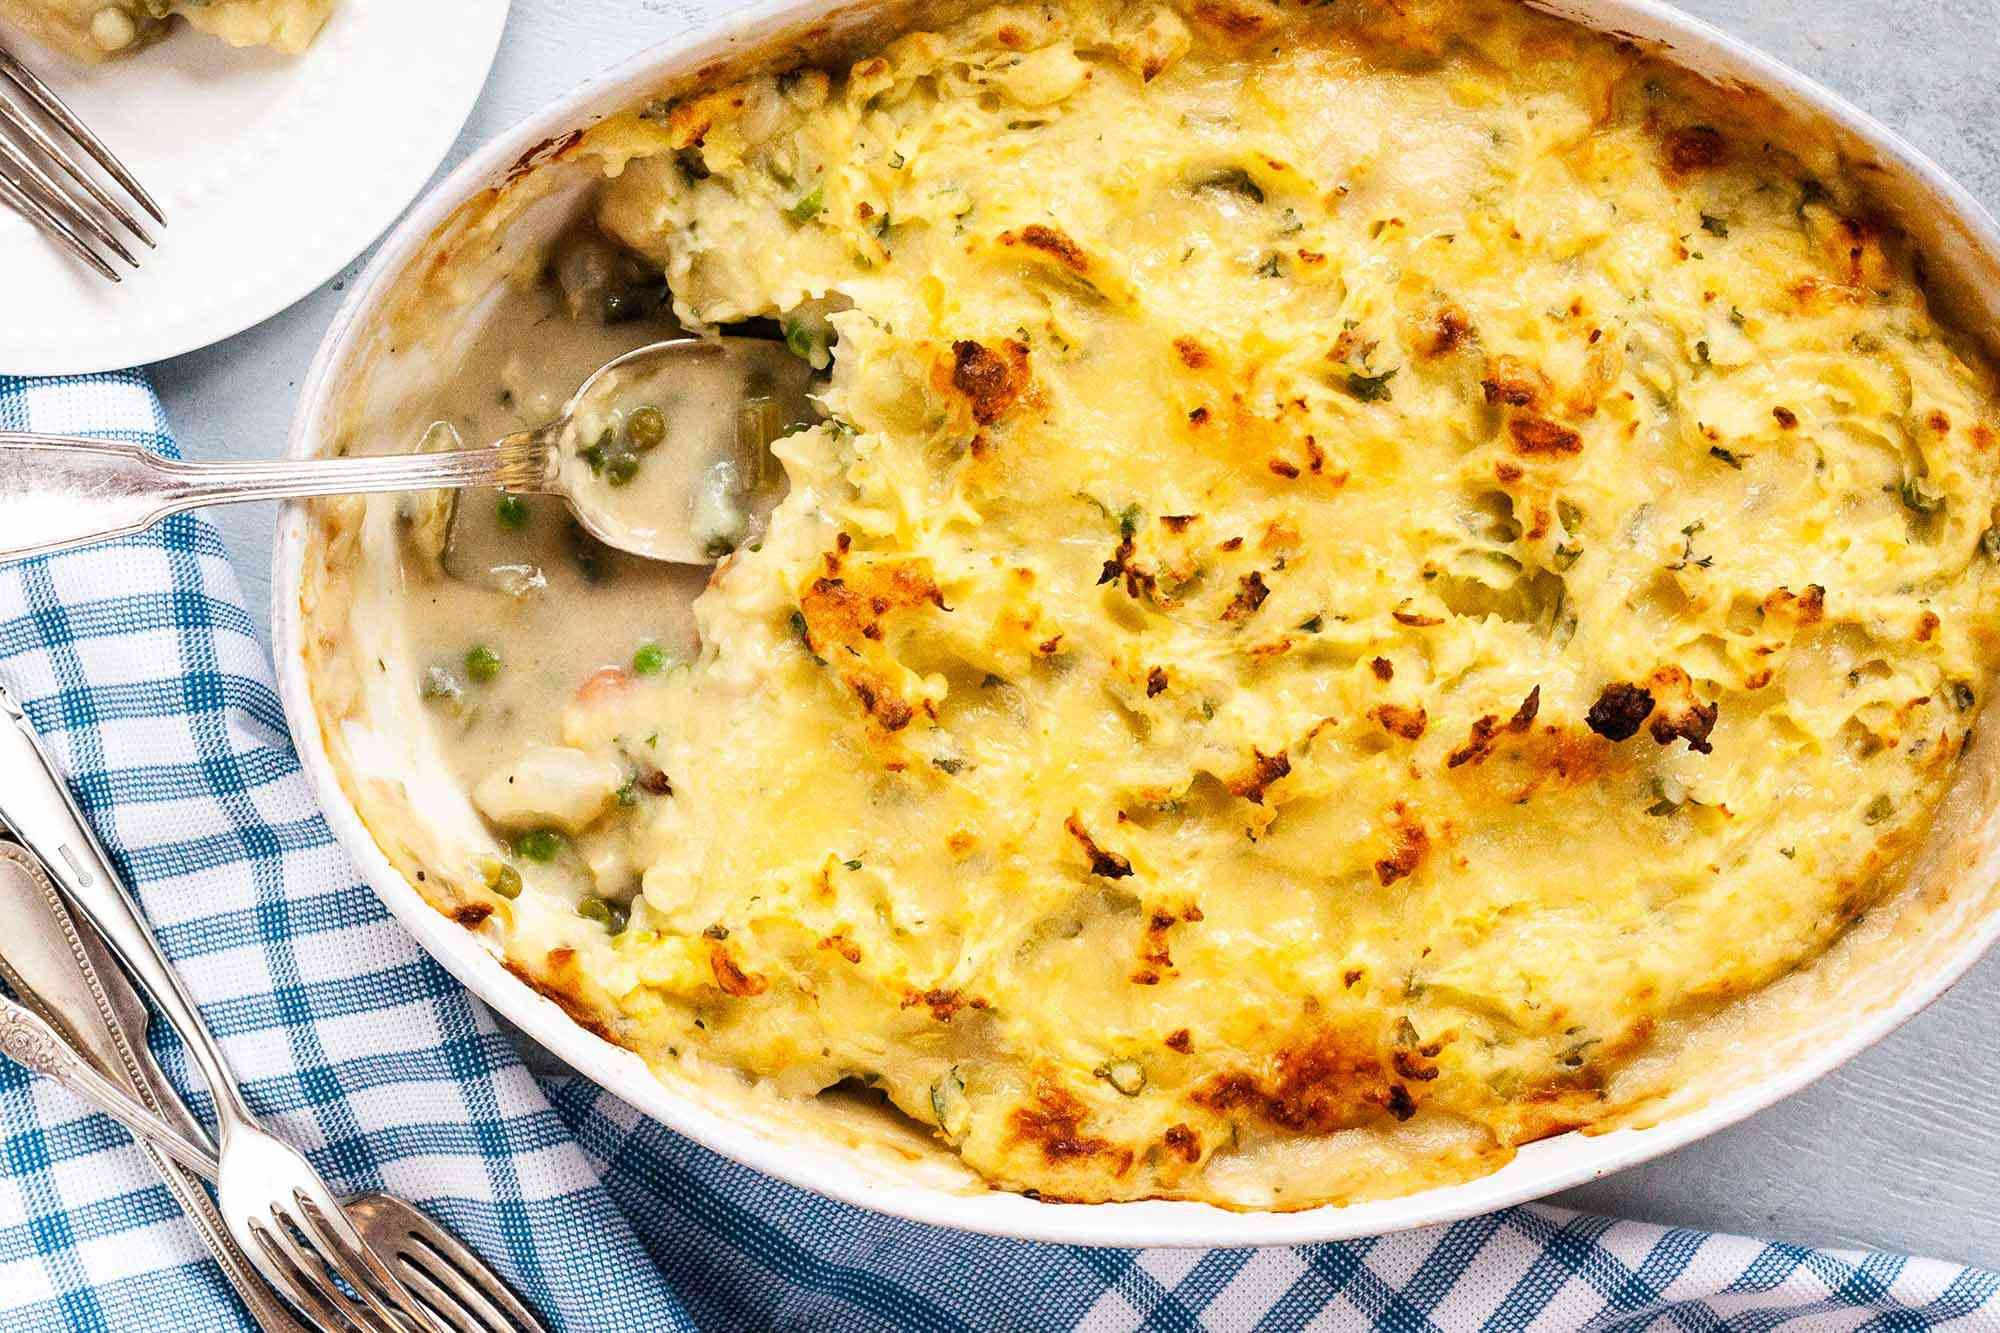 Easy Vegetarian Cottage Pie: shot of white casserole dishw filled with sheperds pie.